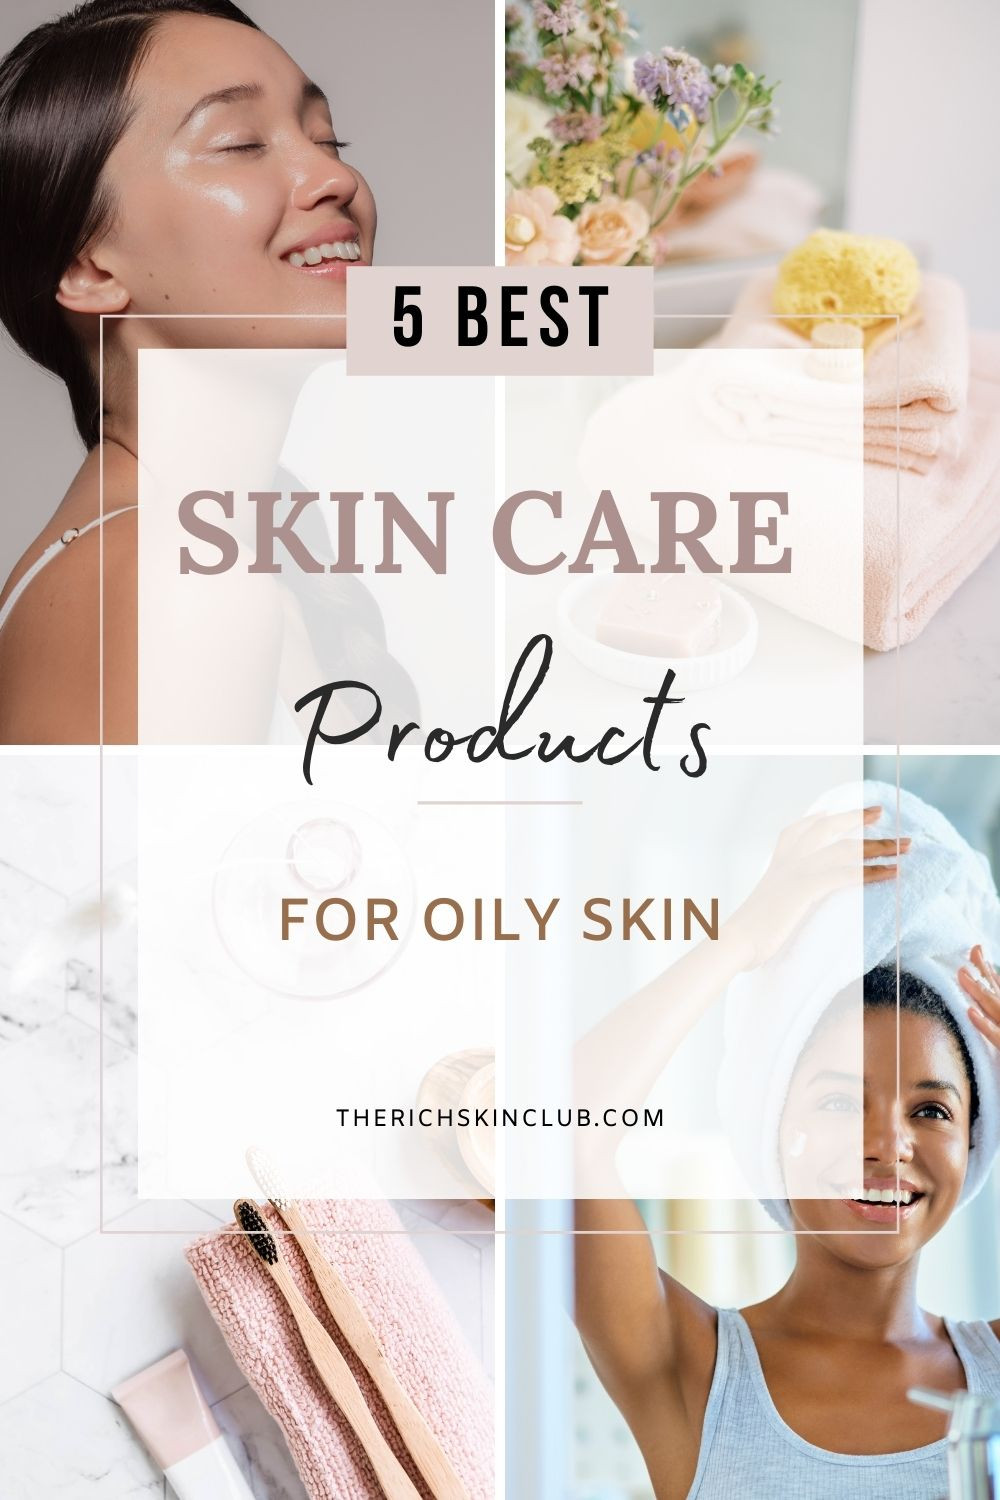 How To Choose The Right Skincare Ingredients For Oily And Acne-Prone Skin. Choosing the right skincare for oily and acne-prone skin types can be very difficult. Get my top clean beauty picks to add to your routine #oilyskinroutine #remediesfor oily face #skincareoily